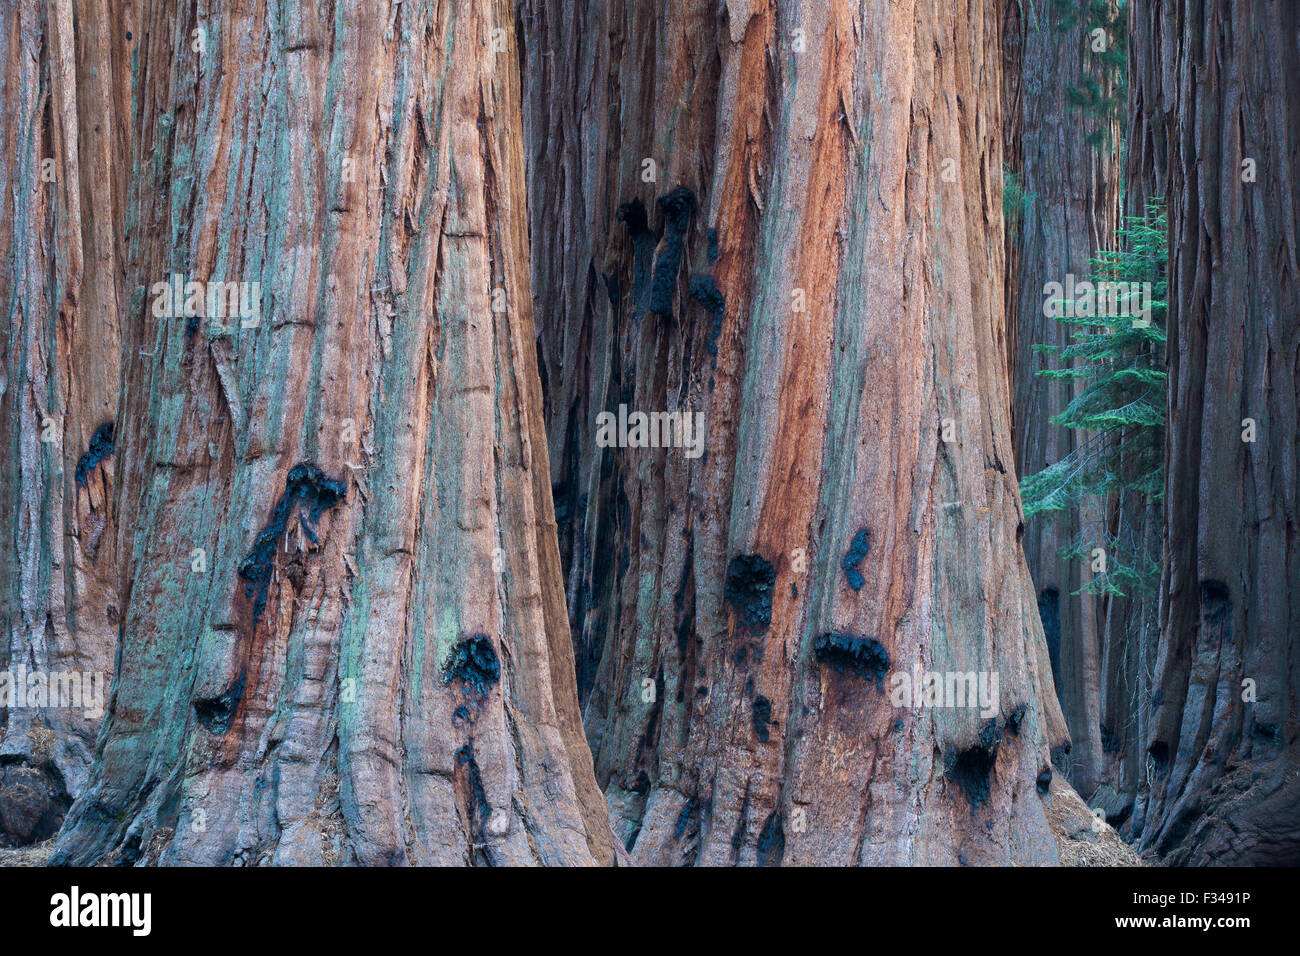 the House Group of giant sequoia trees on the Congress Trail, Sequoia National Park, California, USA - Stock Image